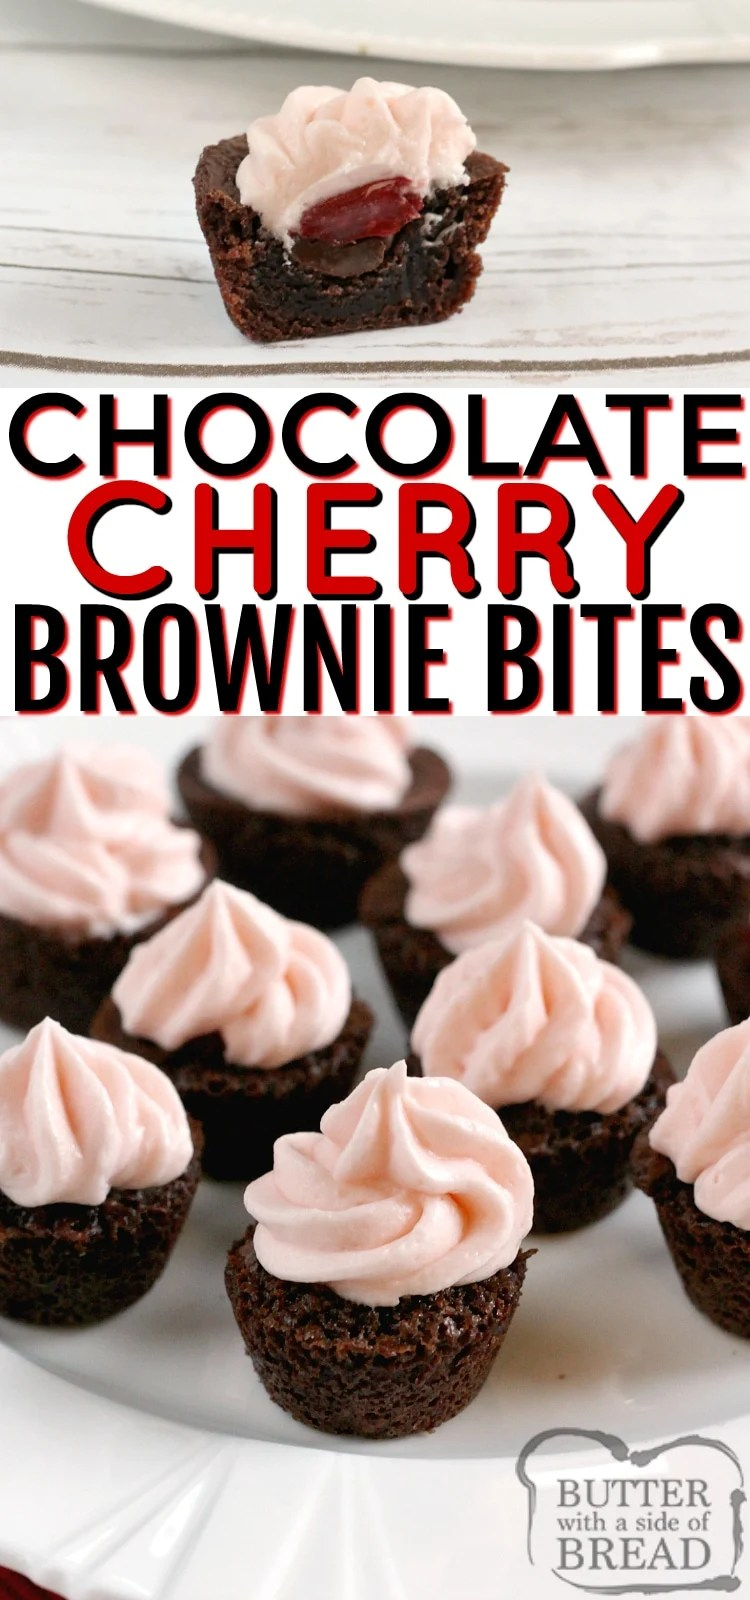 Chocolate Cherry Brownie Bites are mini brownies filled with chocolate chips, maraschino cherries and then topped with a cherry flavored cream cheese frosting! Simple brownie recipe that starts with a box of brownie mix.